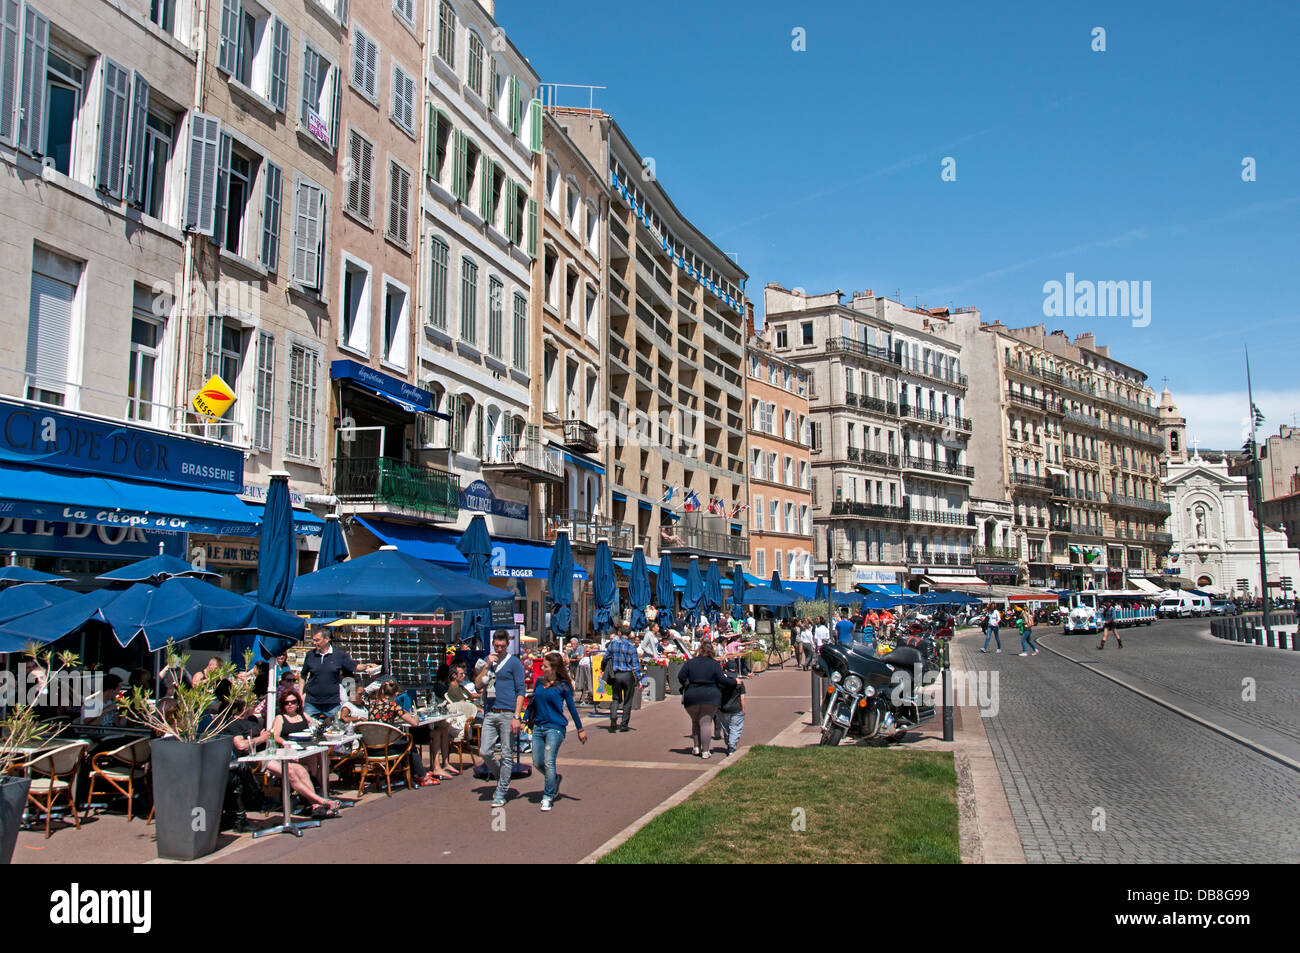 Quai du port restaurant cafe bar pub marseilles france old vieux port stock photo royalty free - Restaurant le vieux port marseille ...